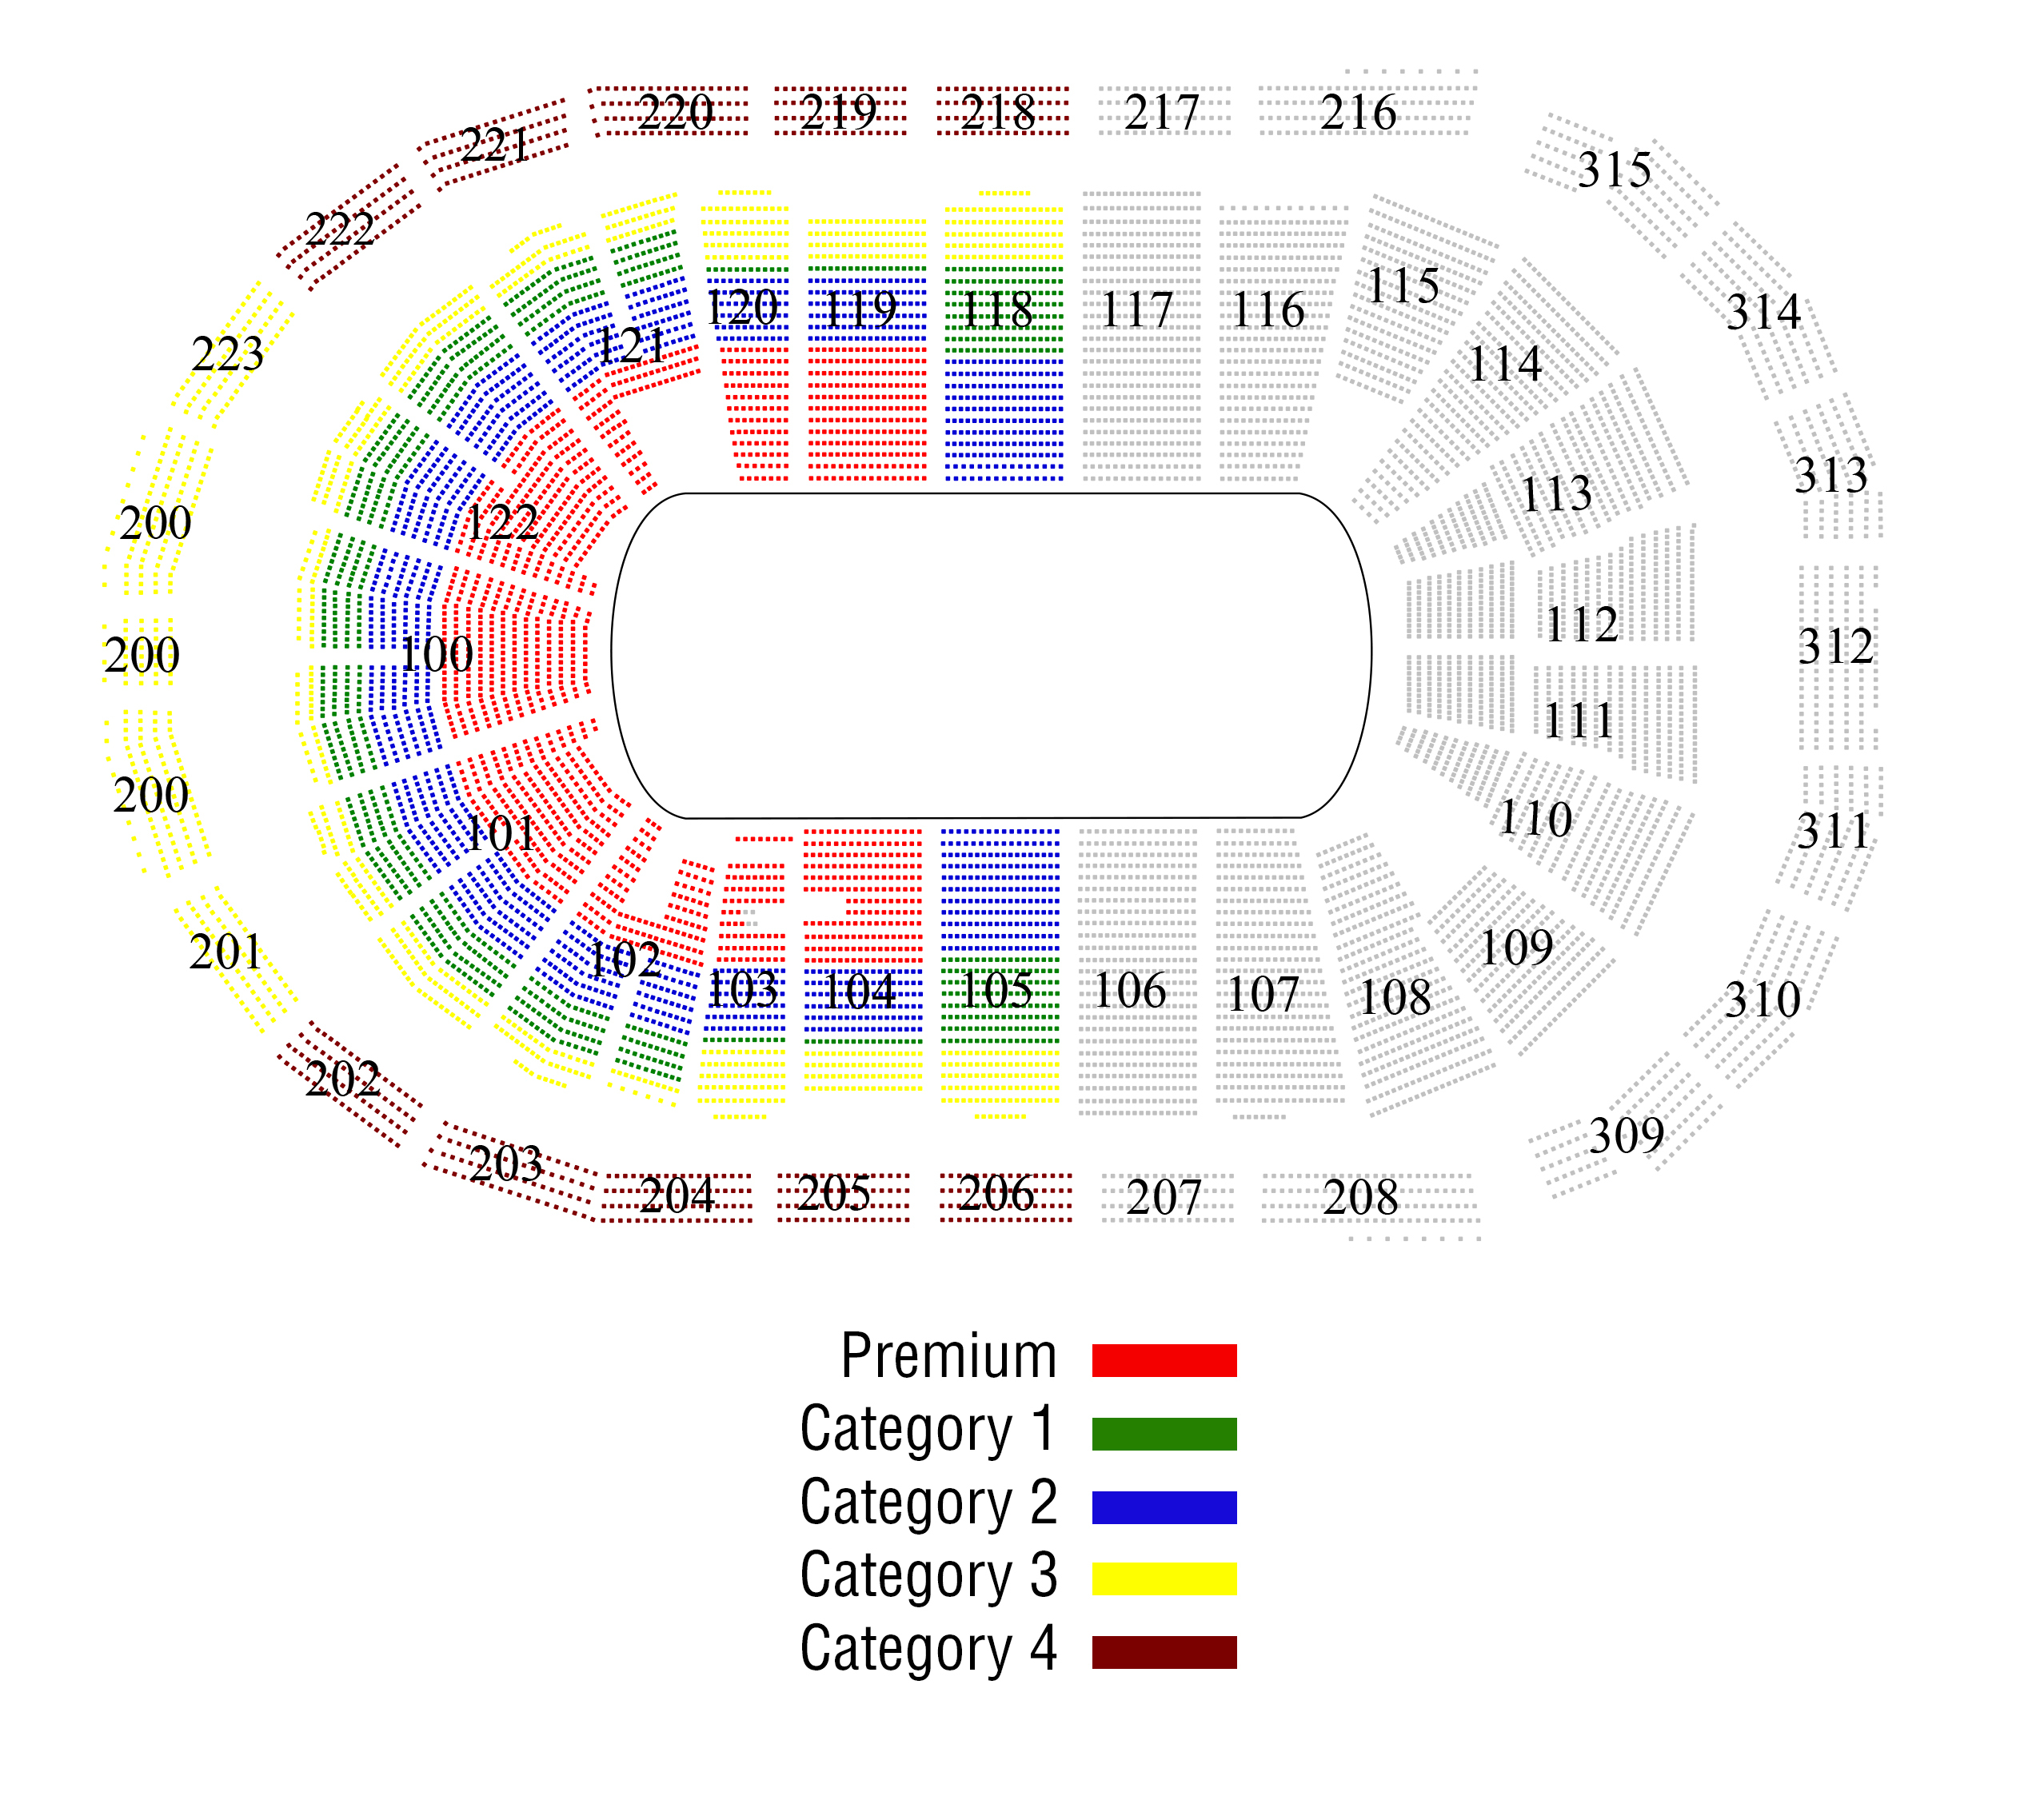 Infinite energy center arena atlanta tickets schedule seating